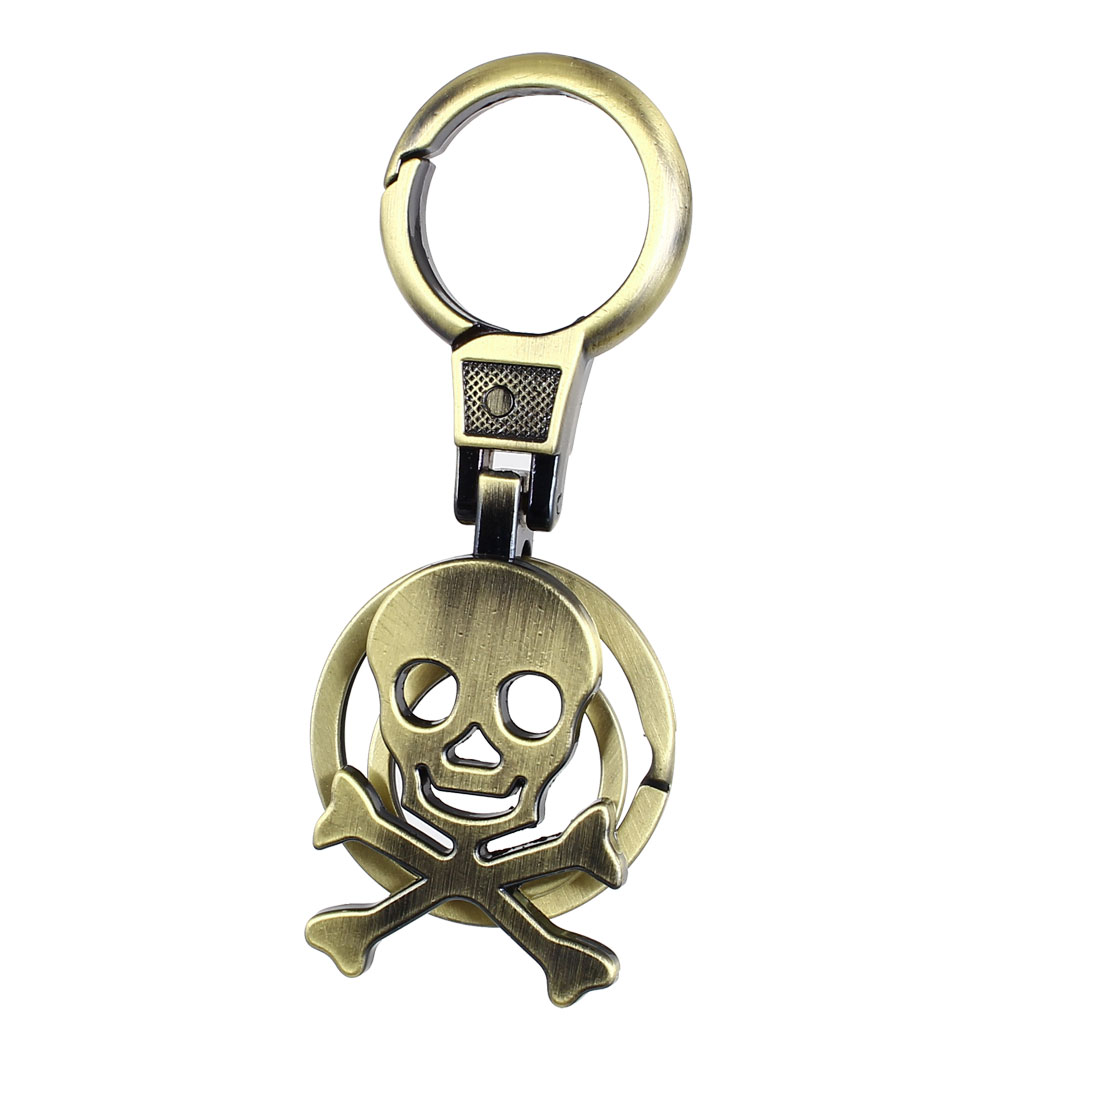 Metal Skull Bones Shaped Pendant Carabiner Ring Clip Key Chain Keyring Bronze Tone